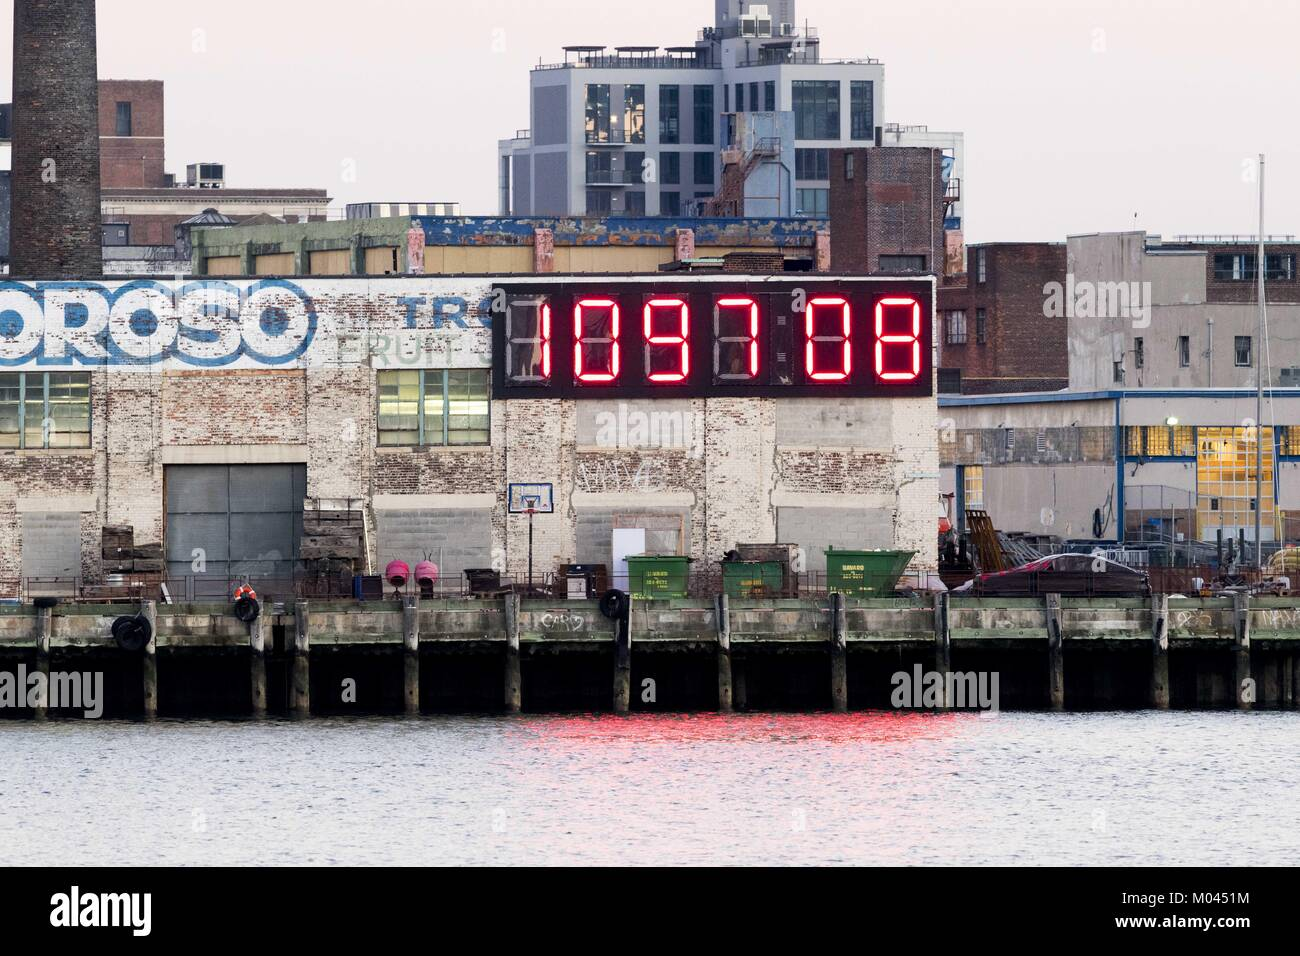 Queens Ny Usa 18th Jan 2018 Very Large Countdown Clock Showing